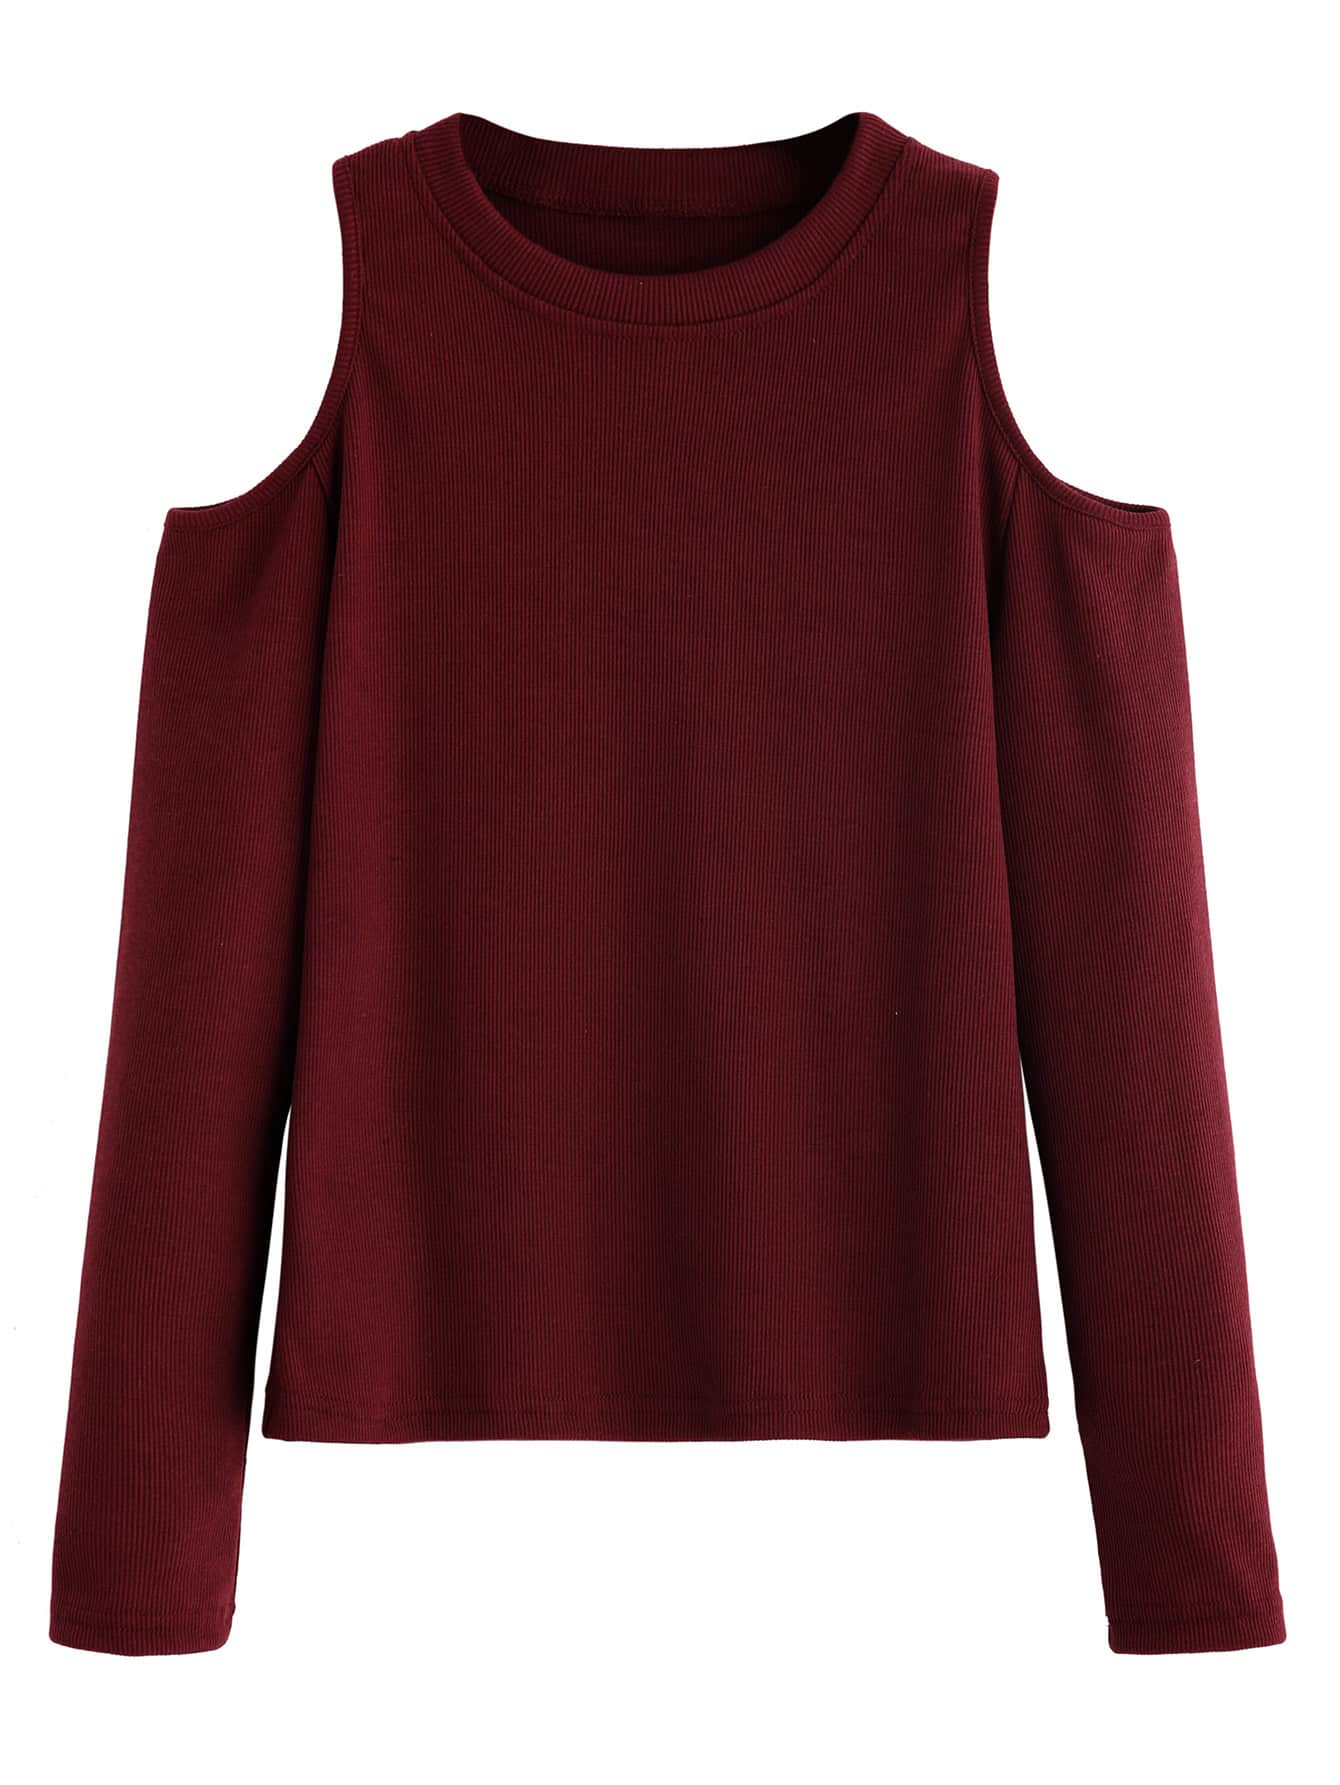 Open Shoulder Ribbed Knit T-shirt tee160825122